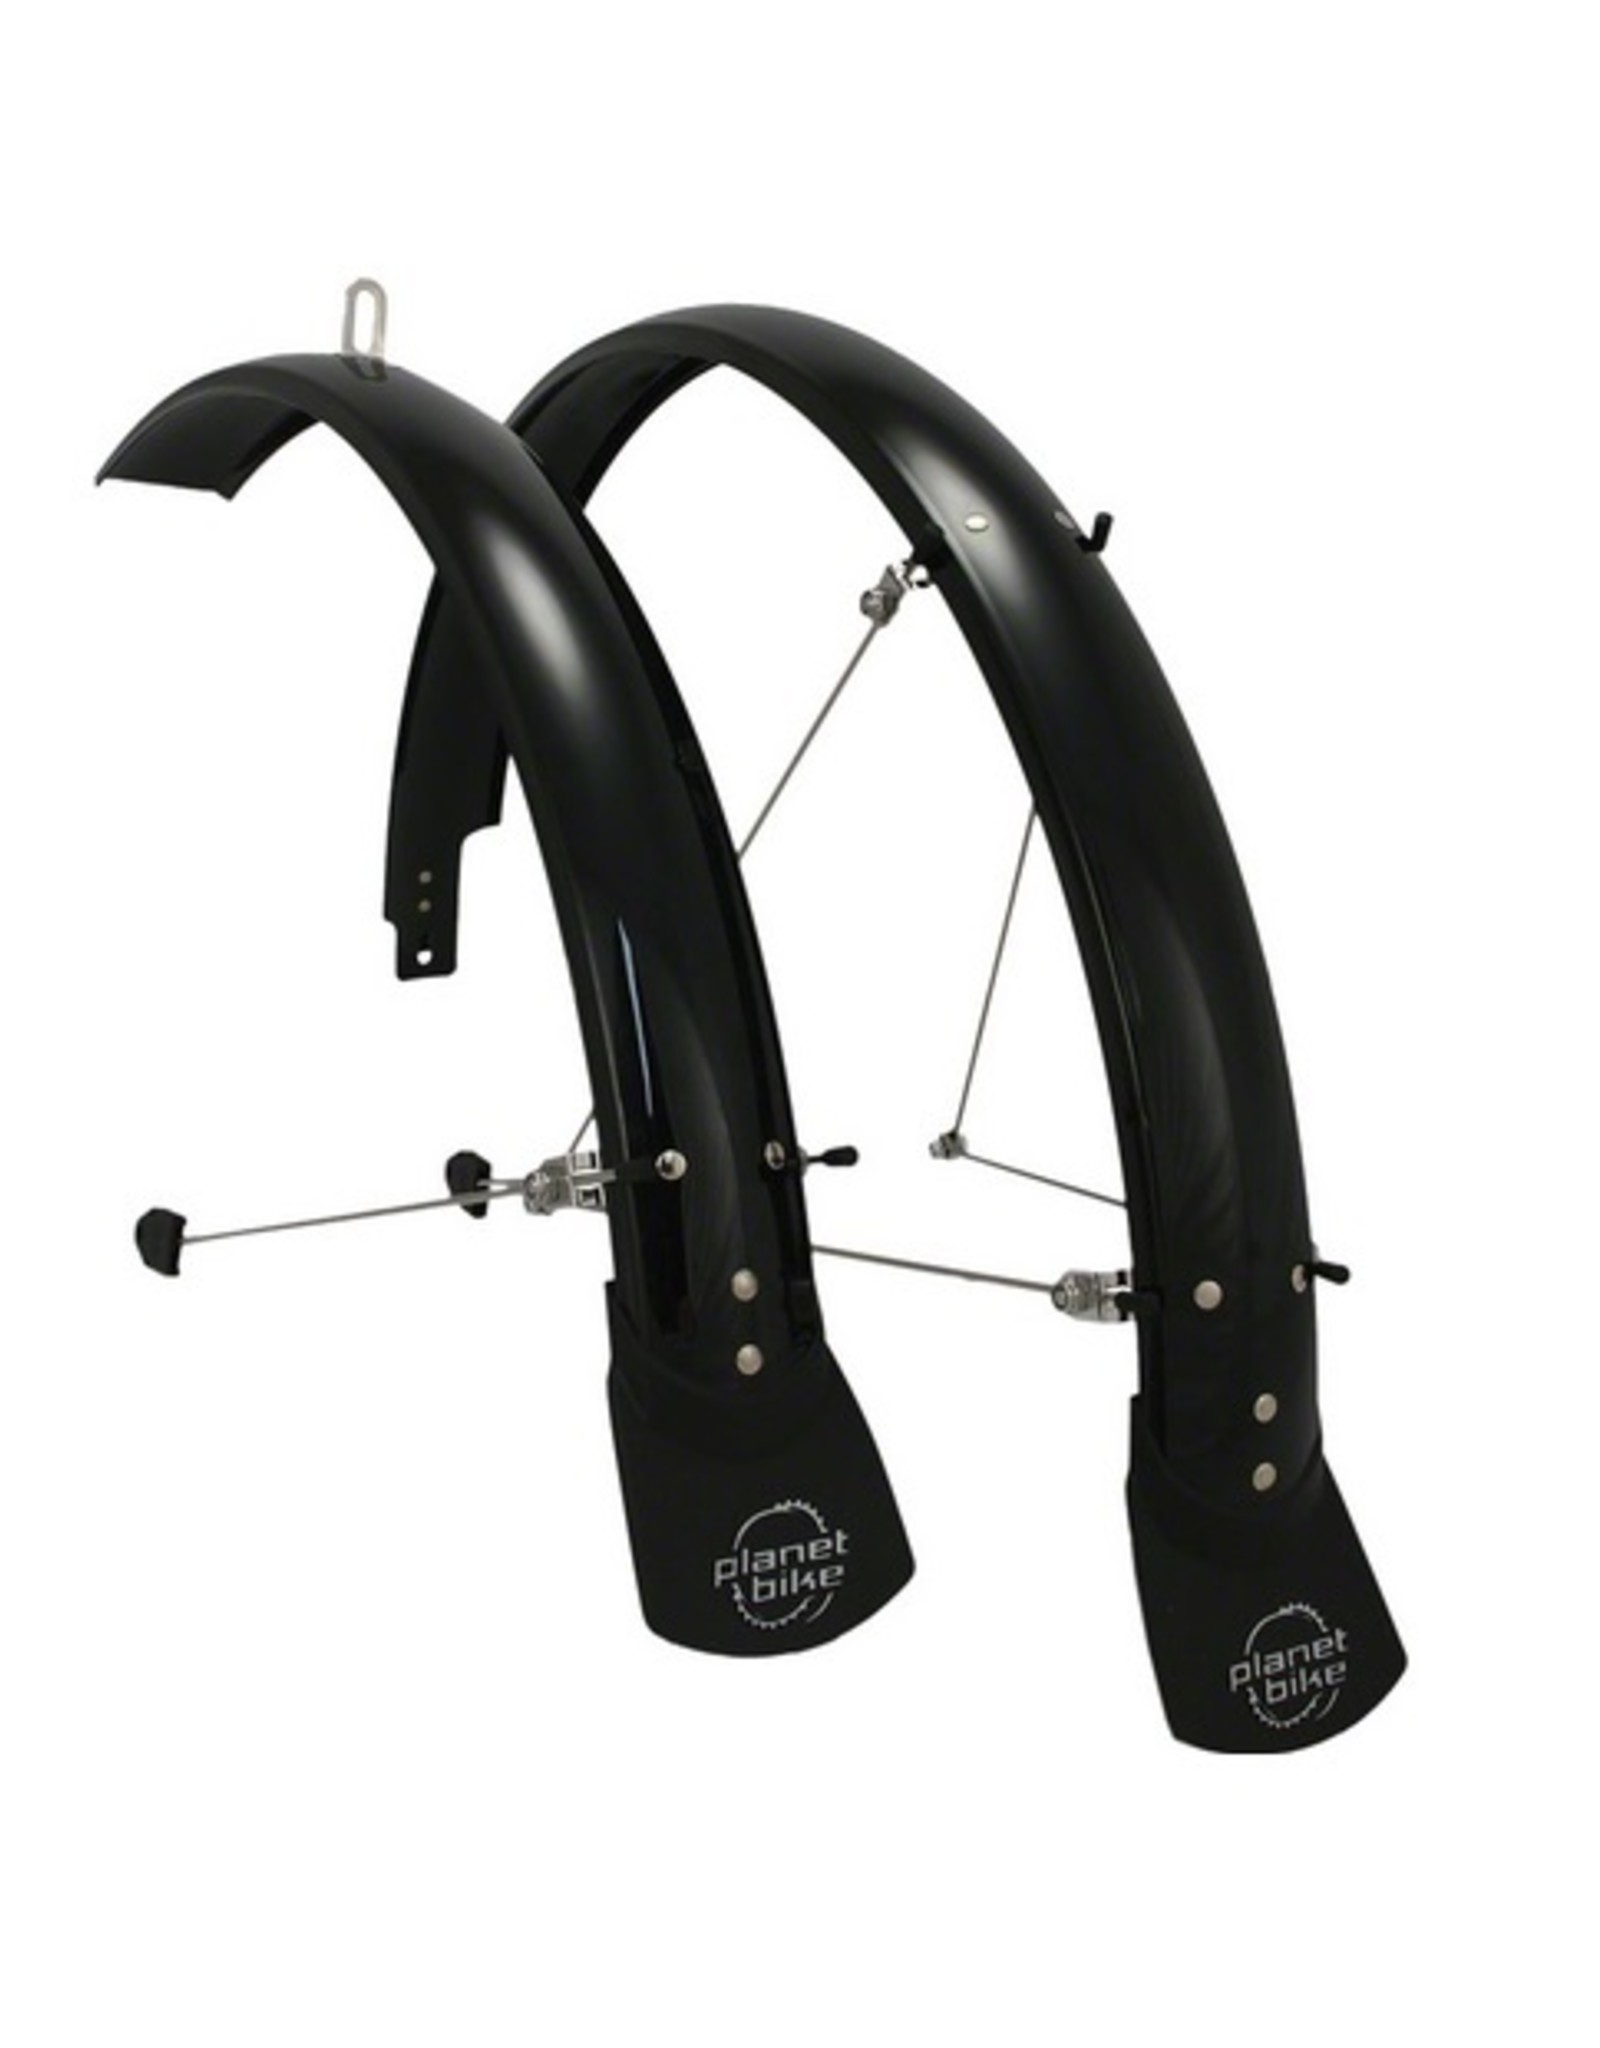 "Planet Bike Planet Bike Hardcore Fenders - 26"" x 60"